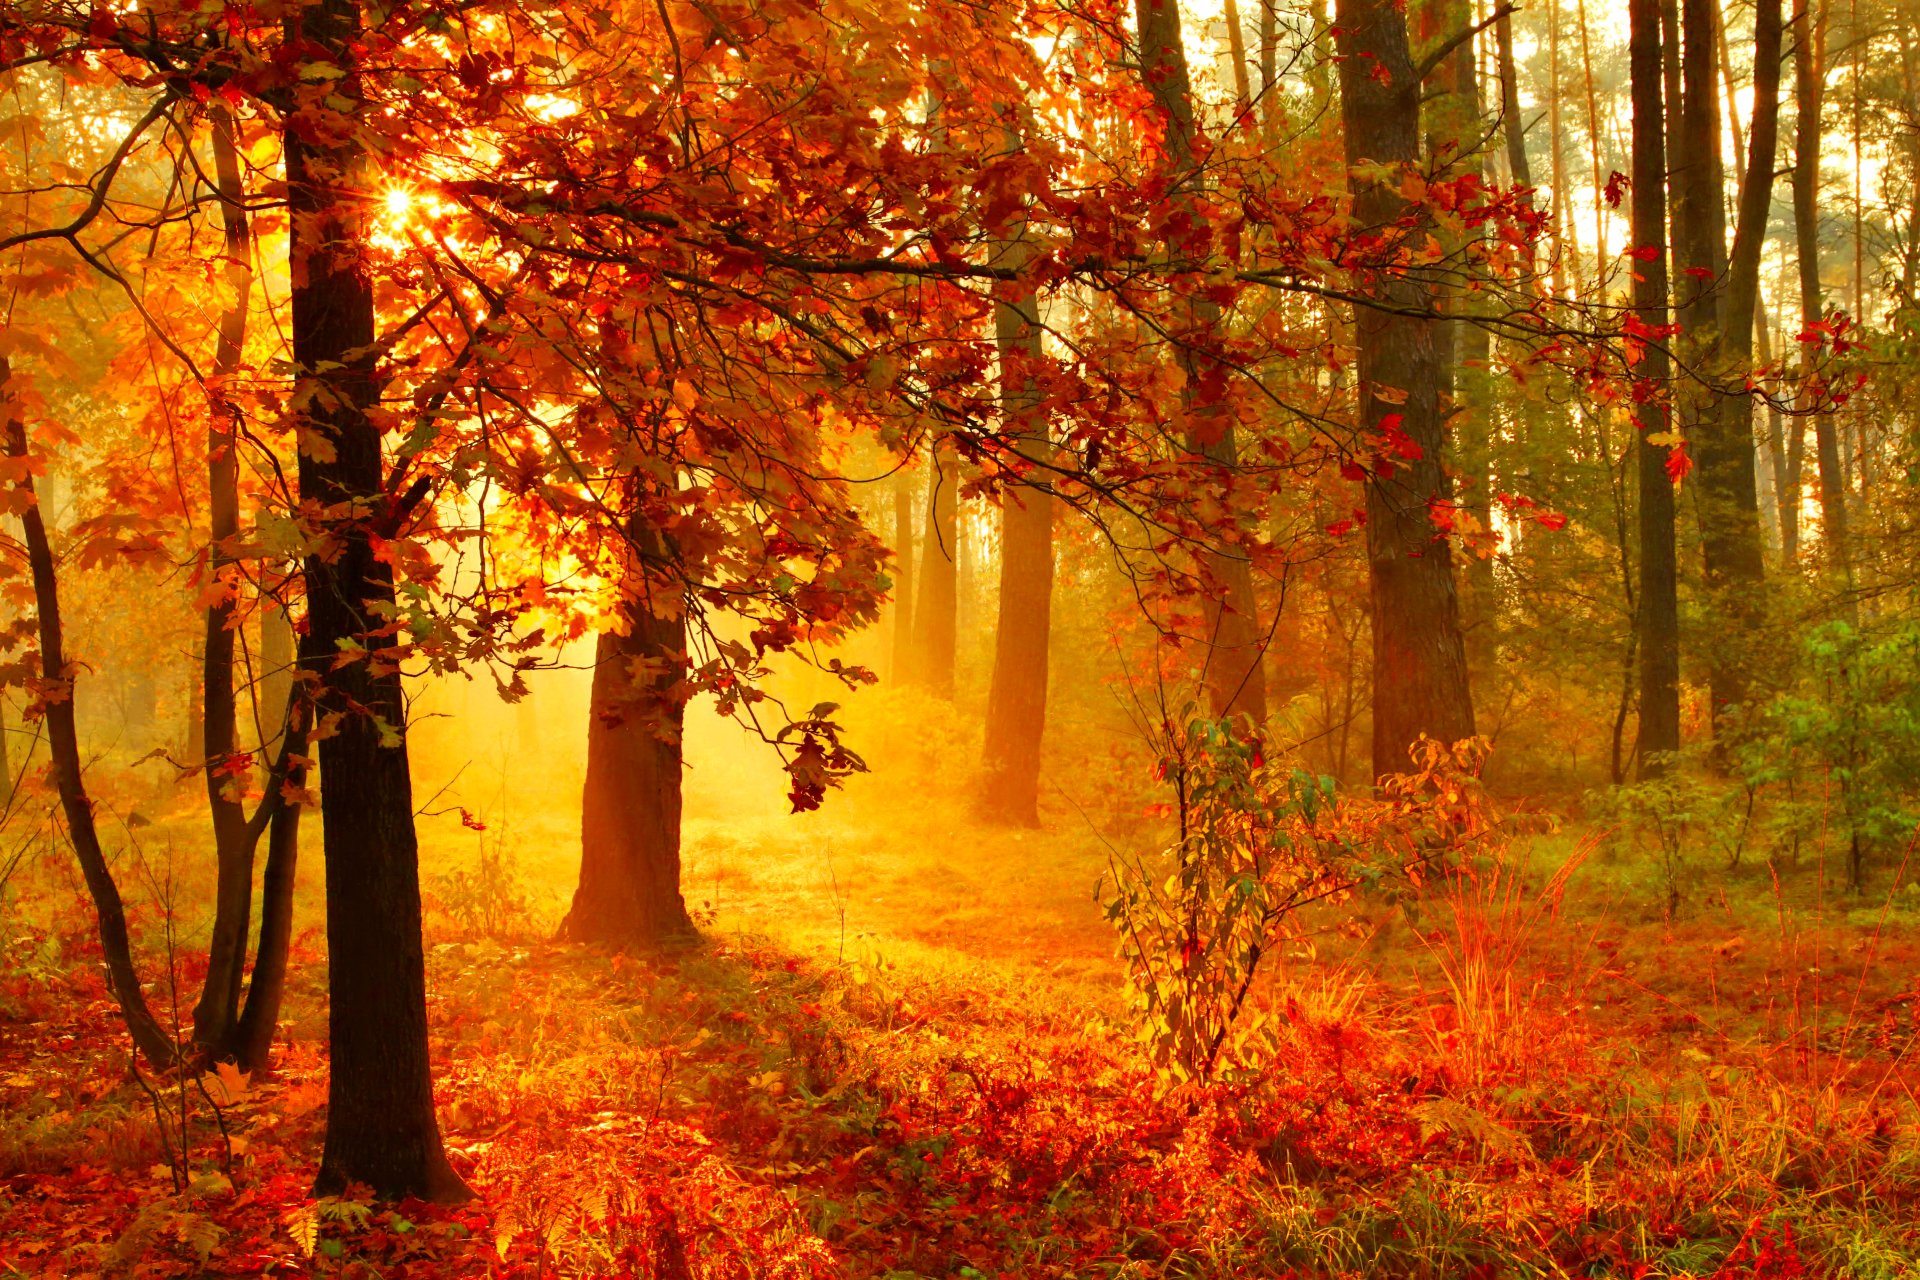 Fall Widescreen Wallpaper Sunset In Misty Autumn Forest Hd Wallpaper Background